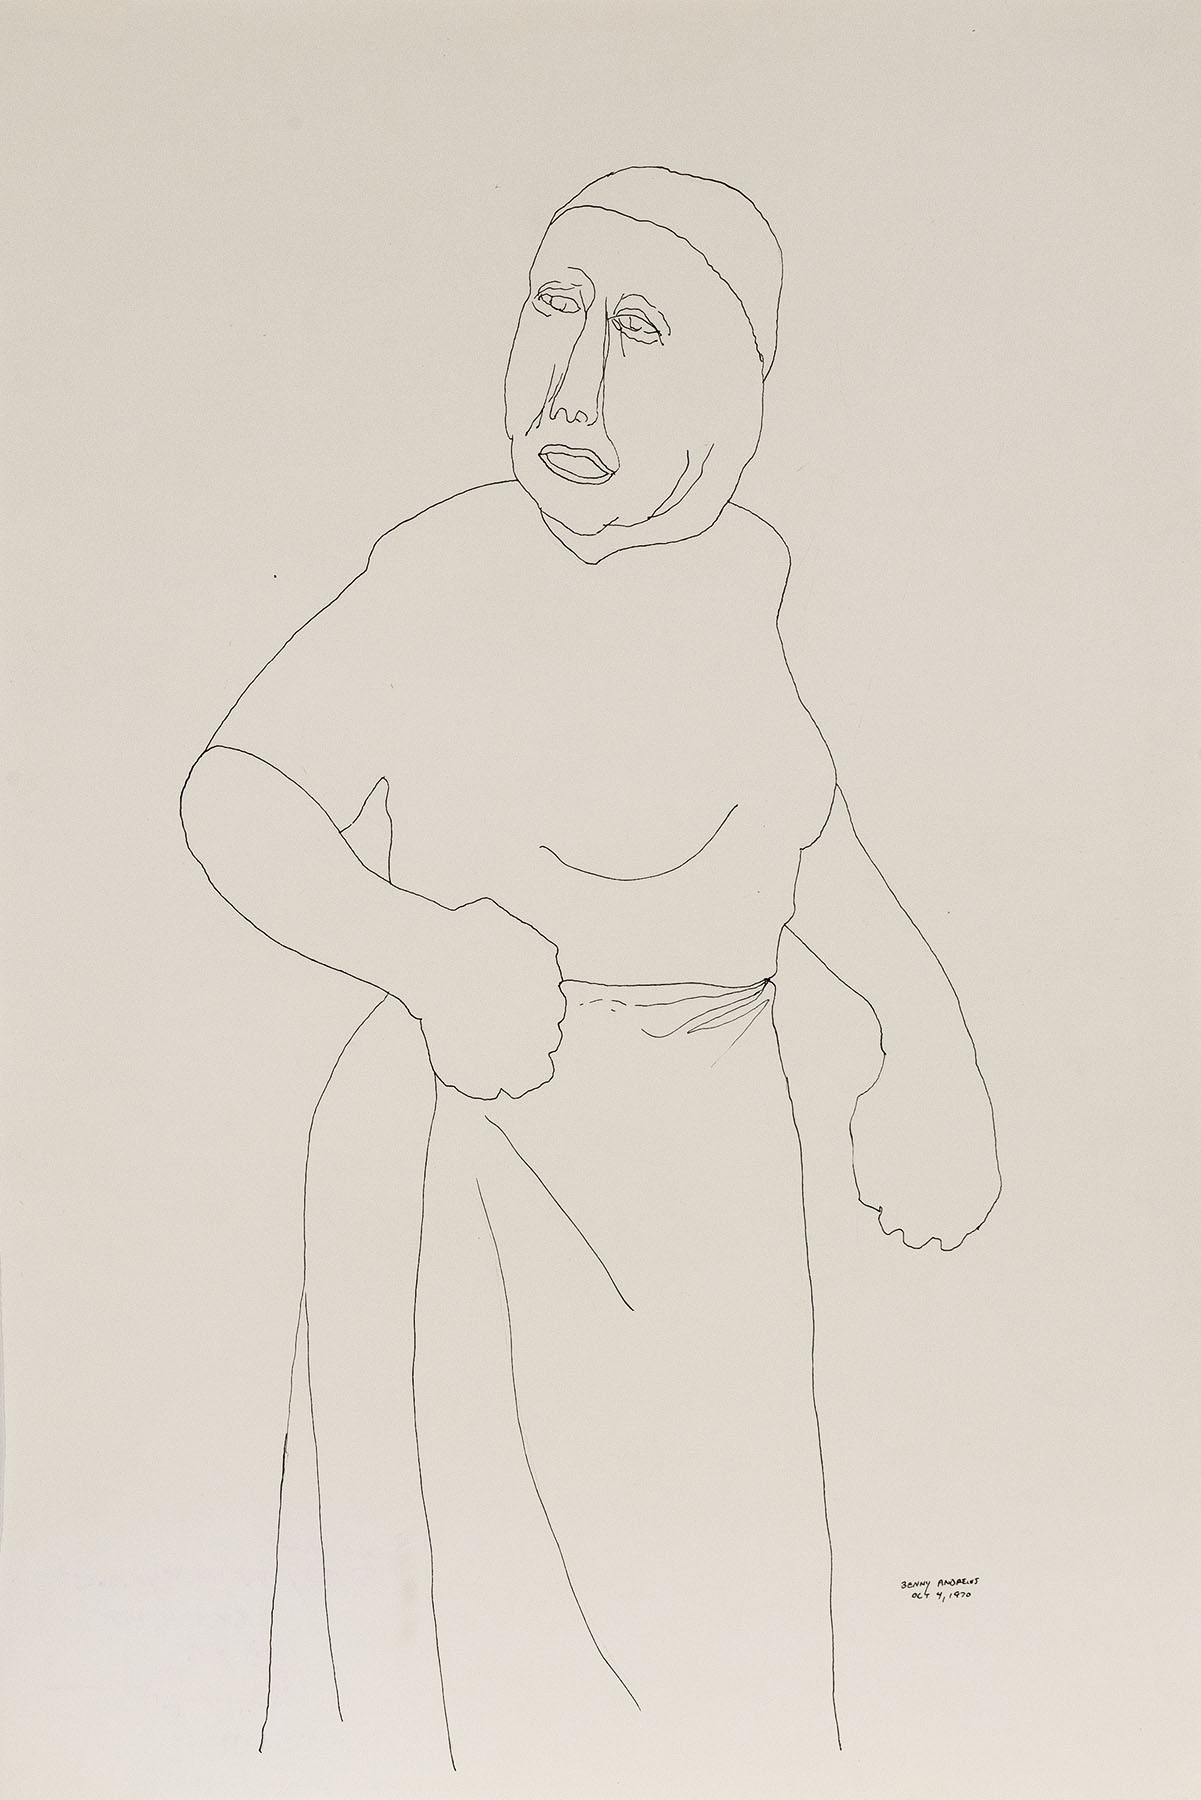 """Woman (Study for Symbols), 1970 pen and ink on paper 18 x 12"""""""